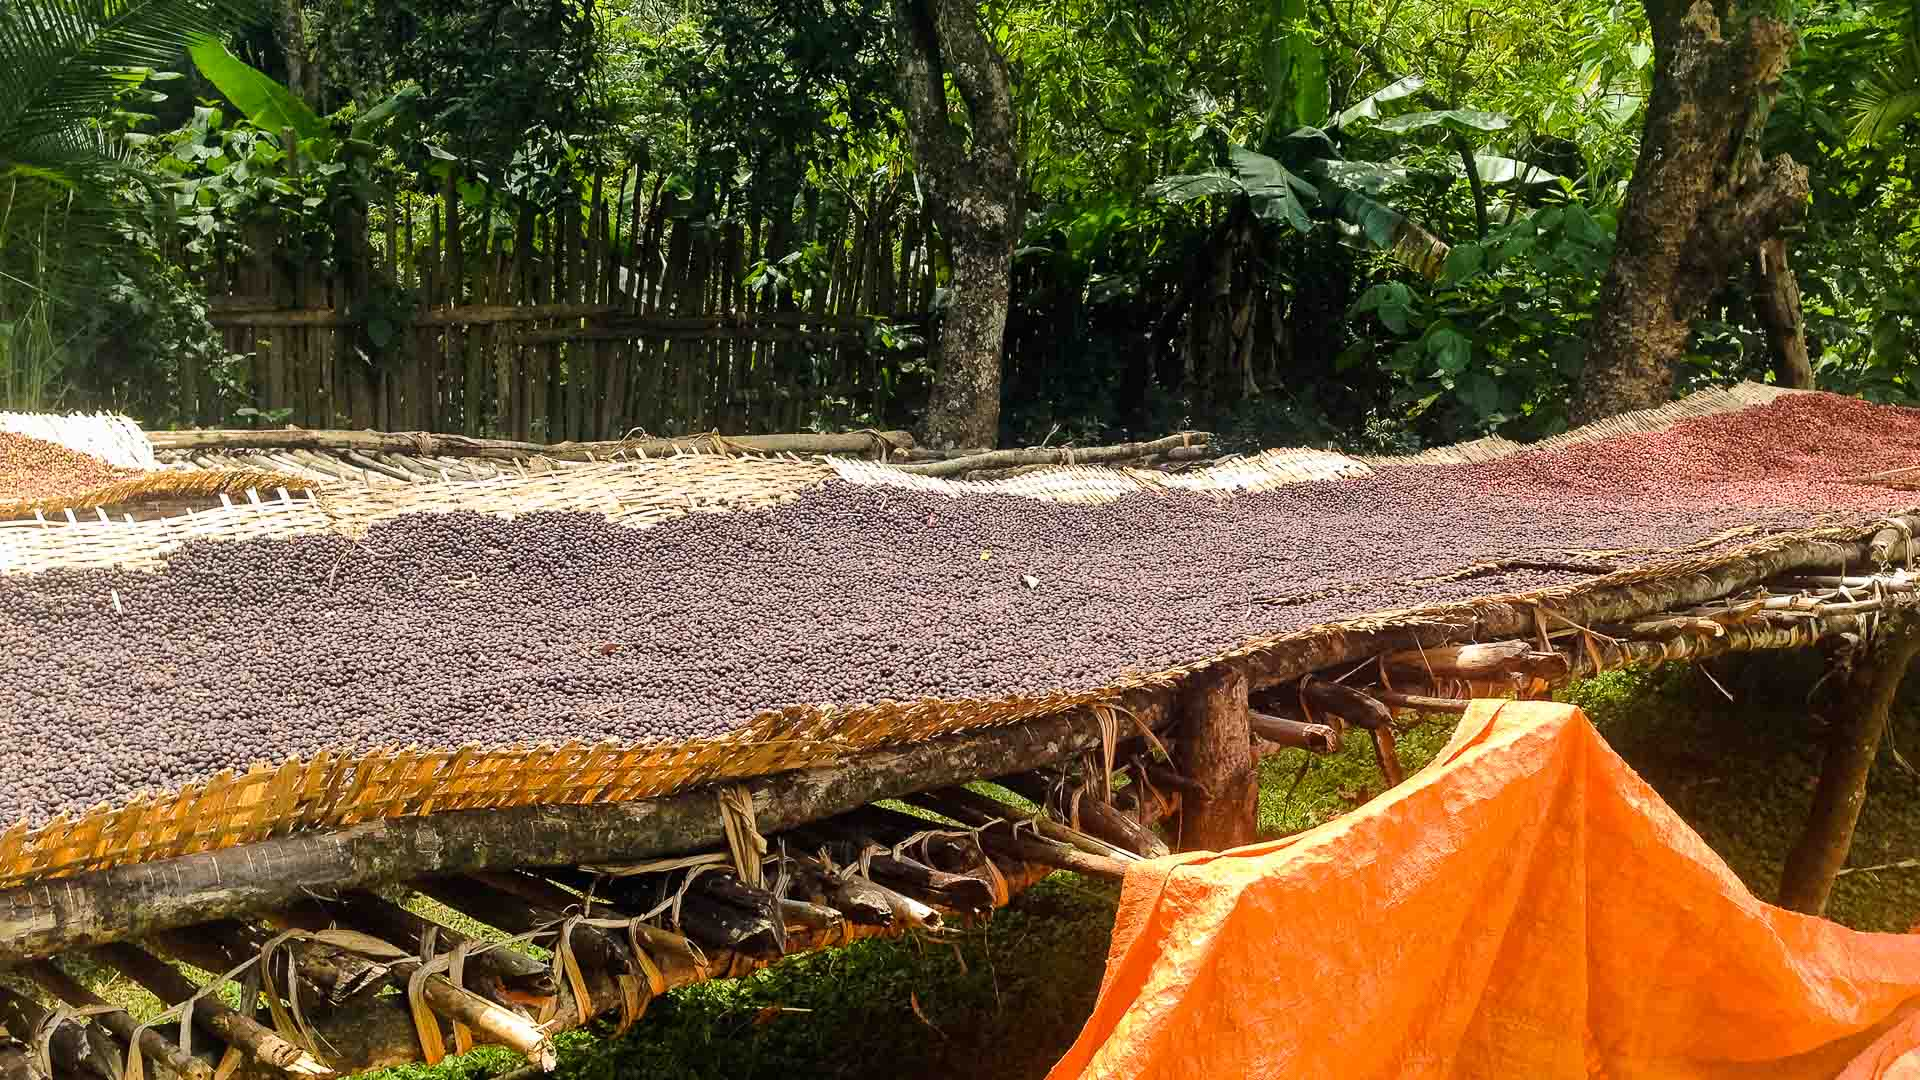 Harvested coffee in Yergalem, Ethiopia